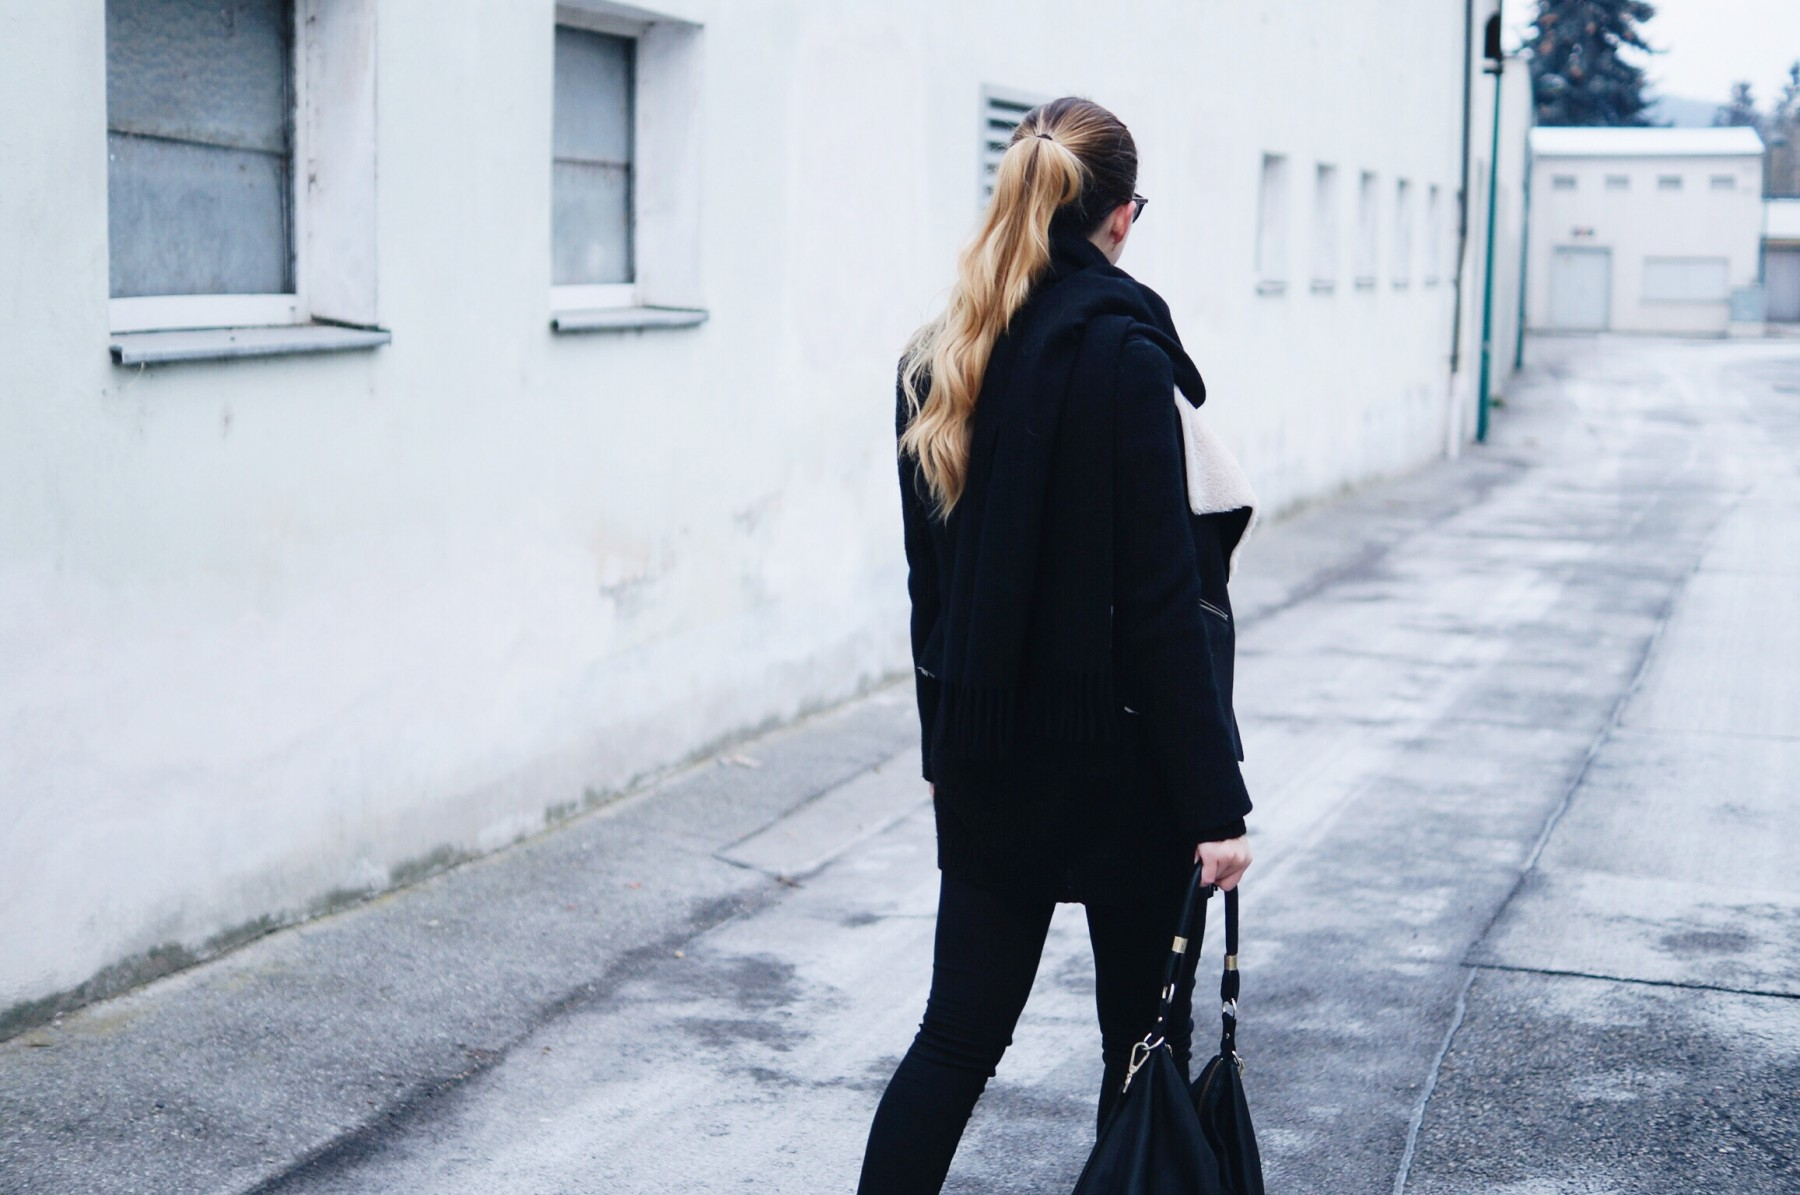 acne_studios_scarf_lambskin_jacket_winter_outfit1